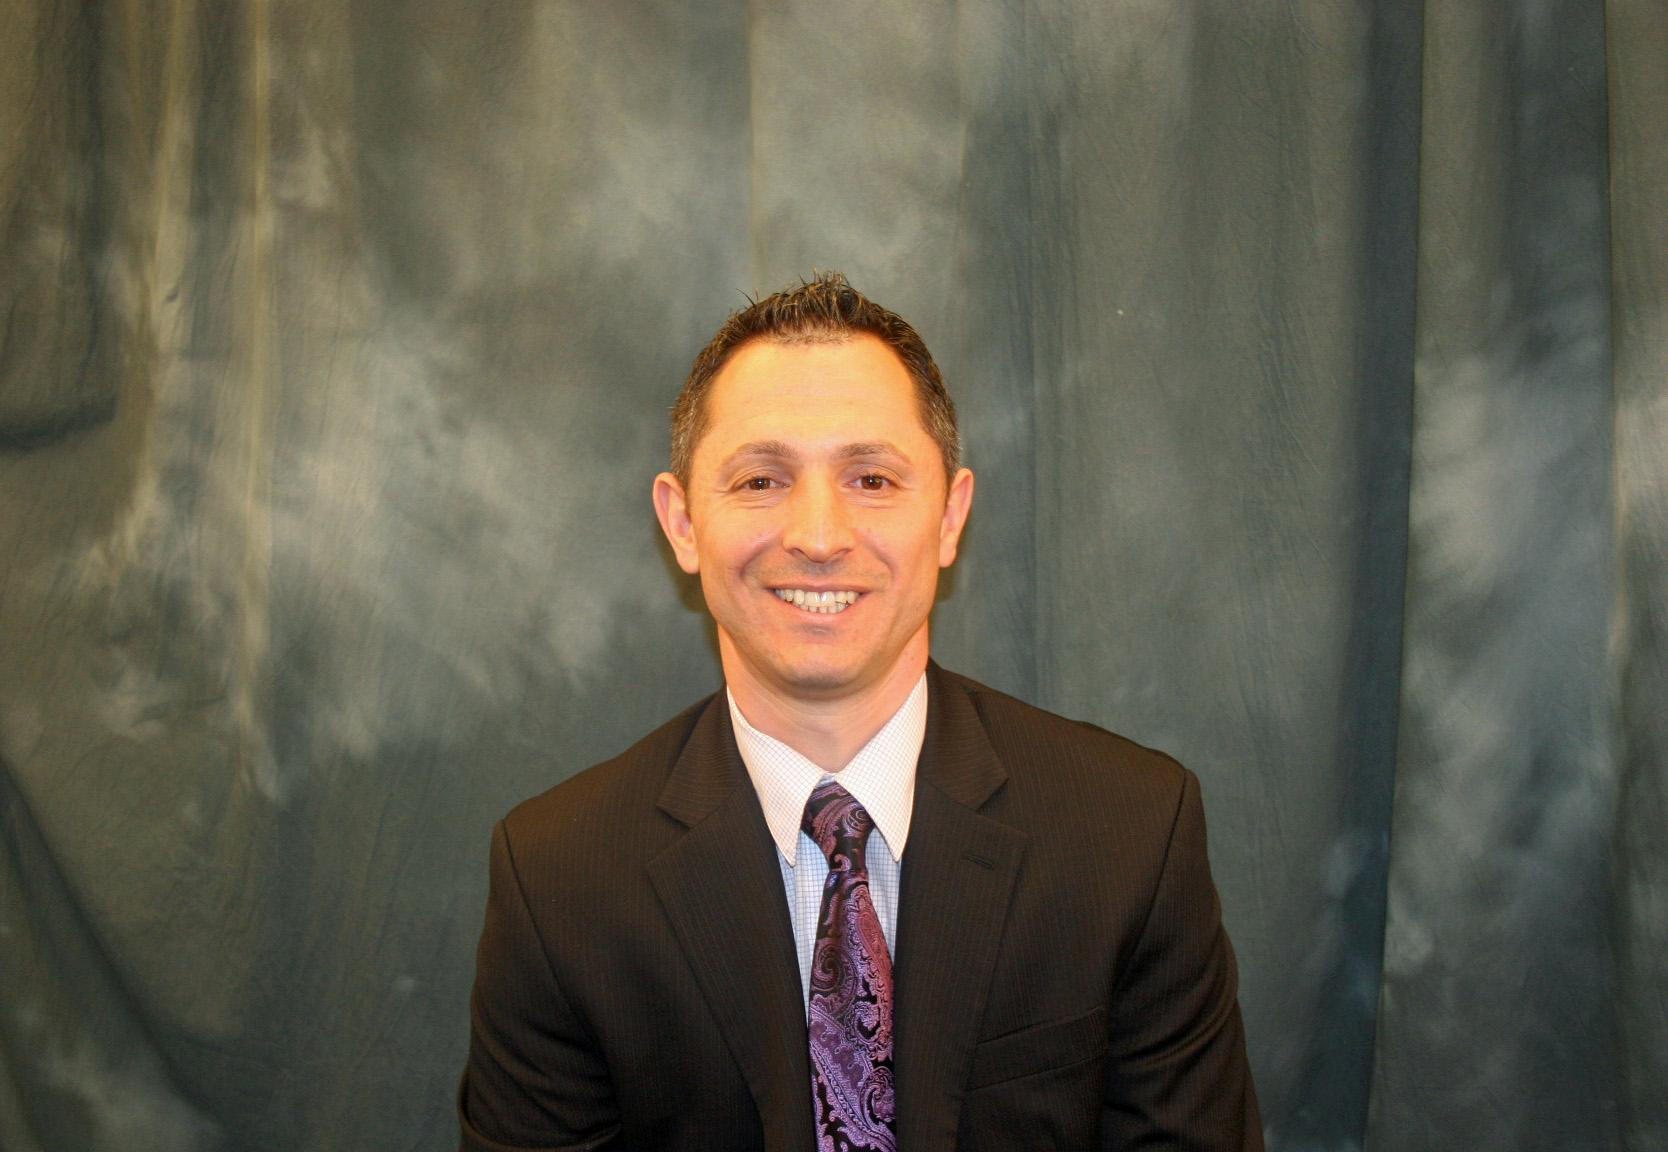 ERIC T. BITETTO Financial Professional & Insurance Agent